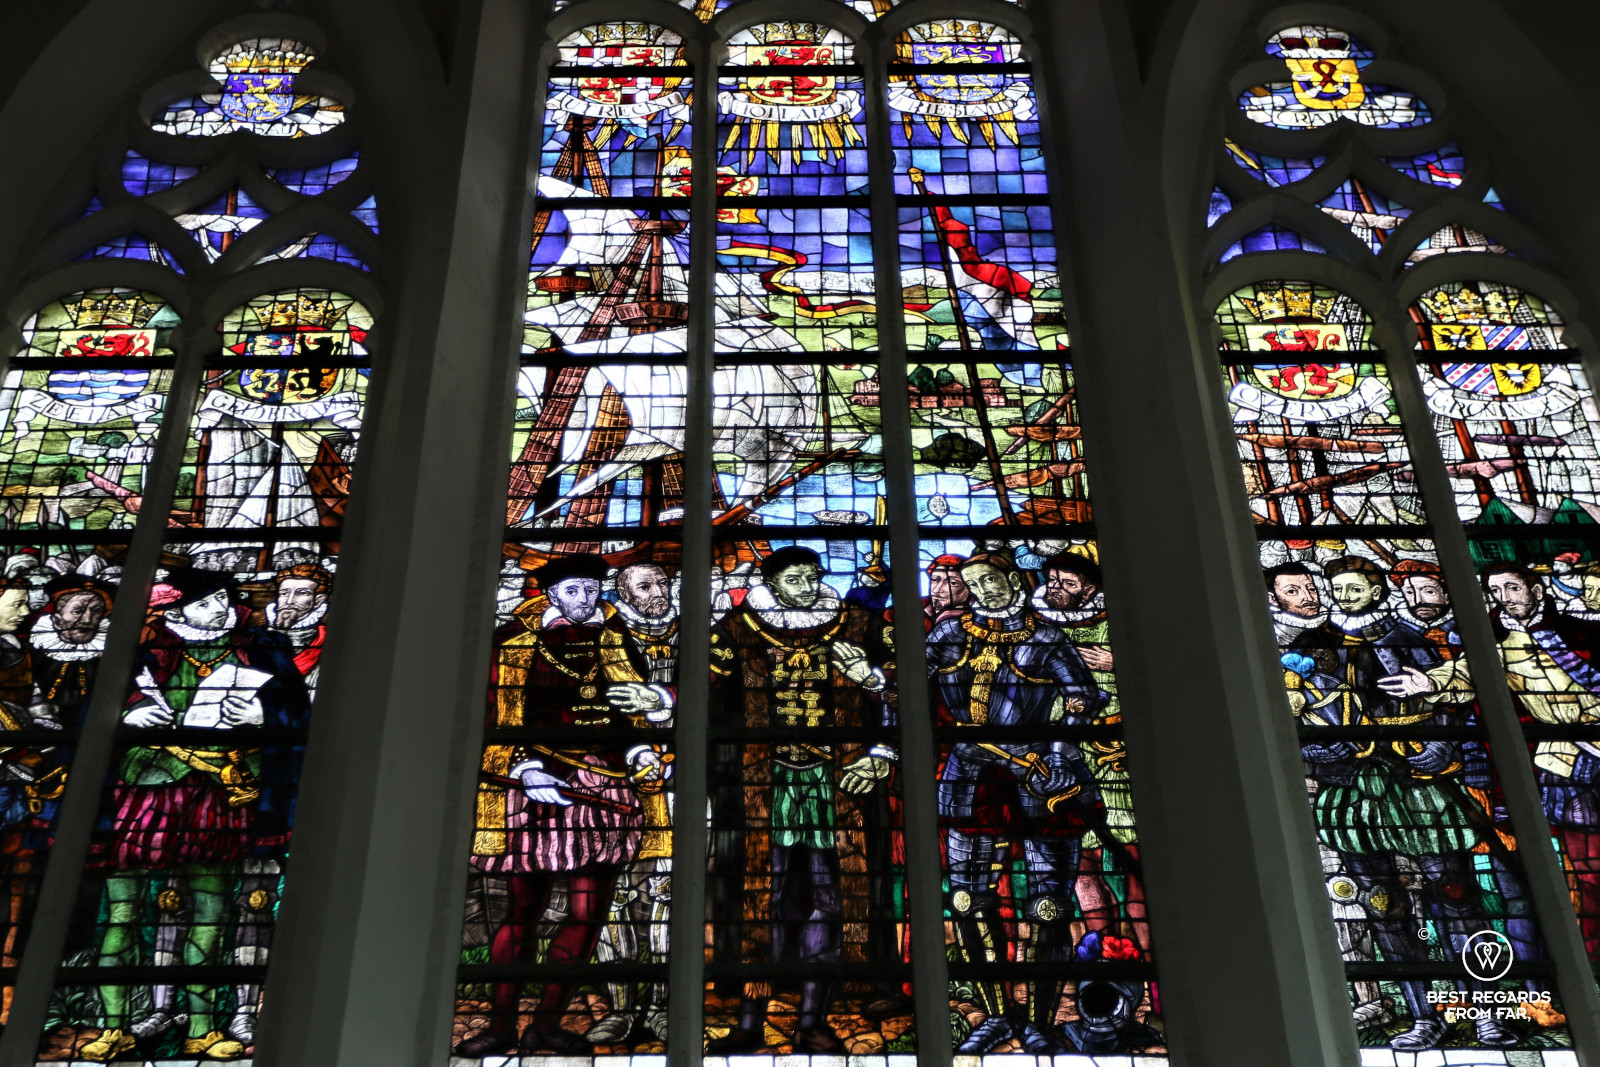 Stained-glass window showing William of Orange's allies in the Old Church, Delft